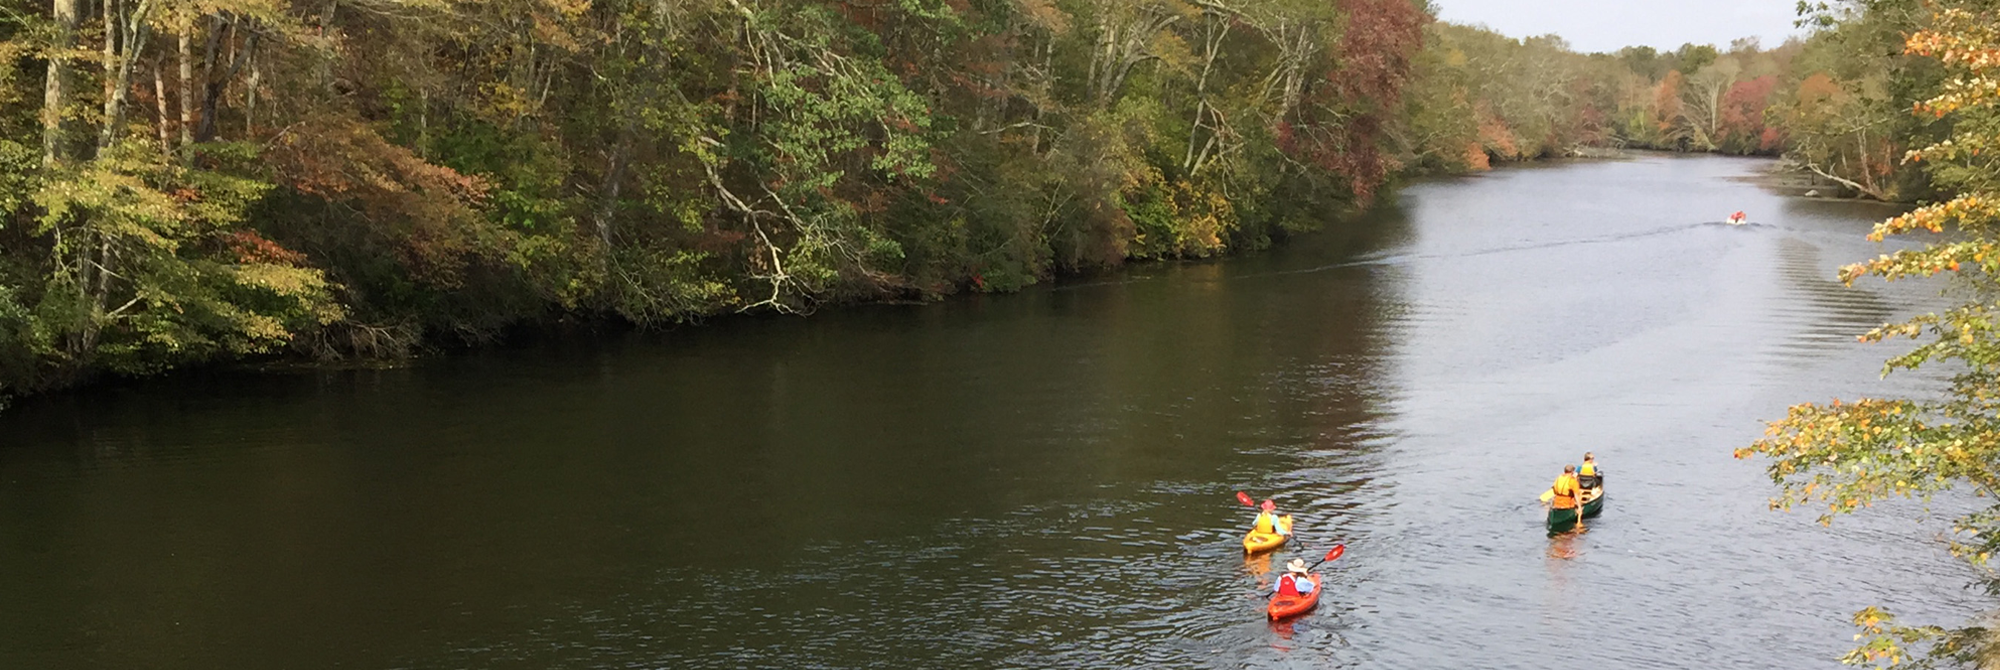 Kayaks paddling on Quinebaug River near Butts Bridge Road with leaves beginning to change color.